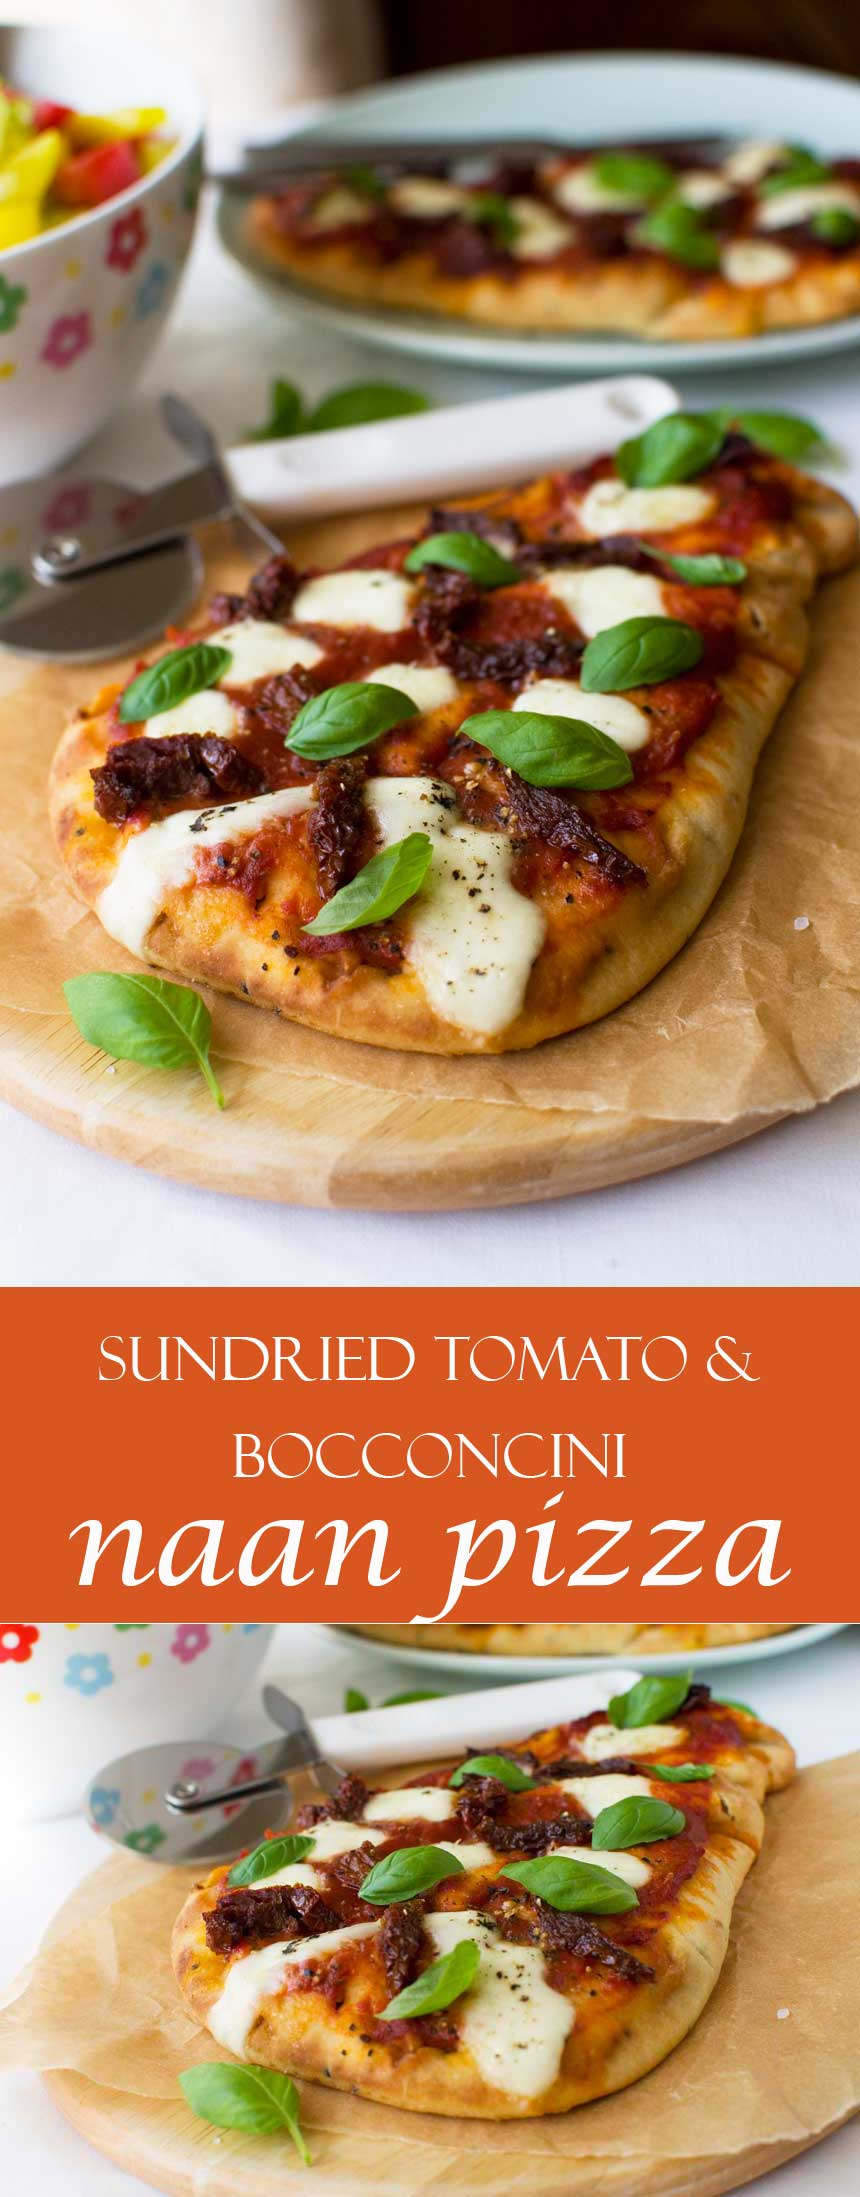 Sun dried tomato and bocconcini naan pizza (easy 20-minute meal!)